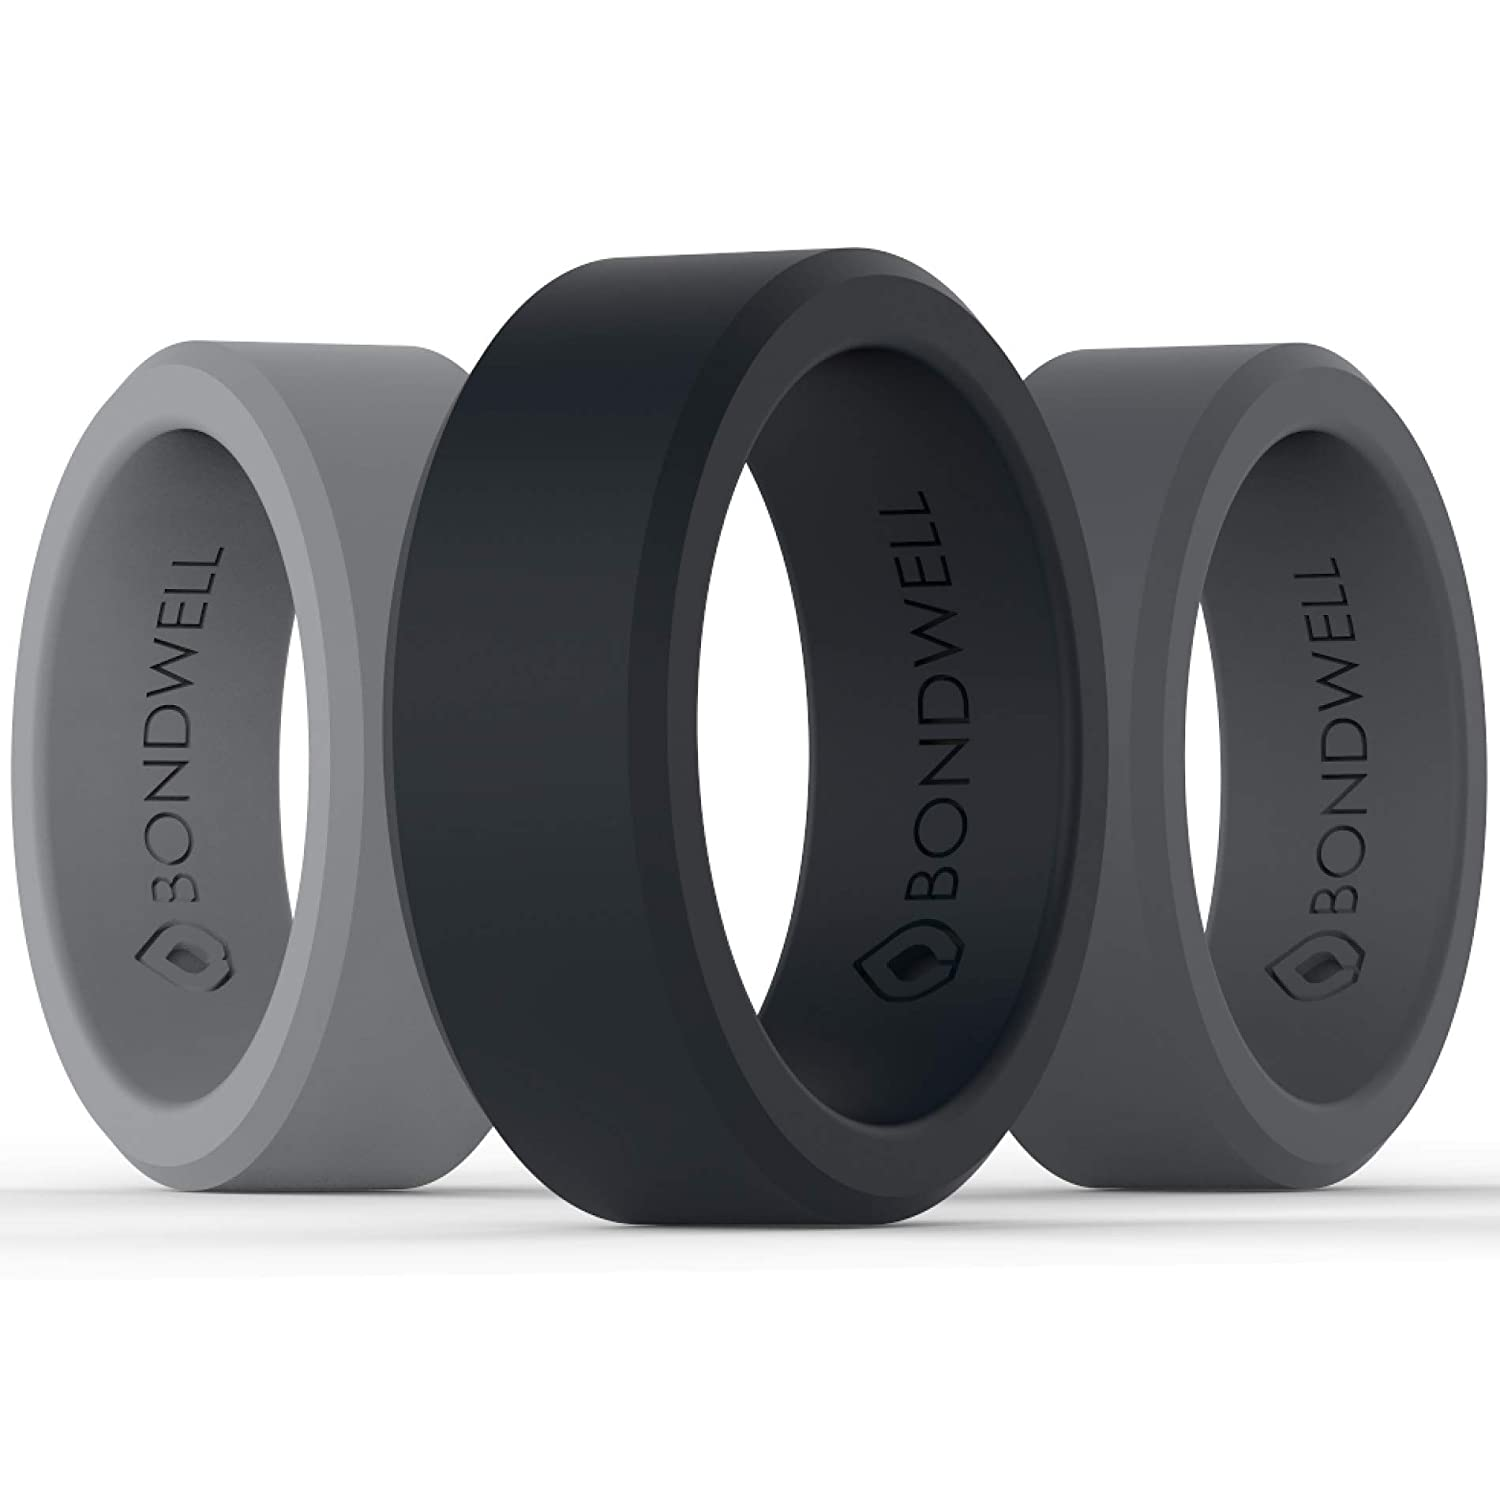 BONDWELL Silicone Wedding Ring for Men Save Your Finger & A Marriage Safe, Durable Rubber Wedding Band for Active Athletes, Military, Crossfit, Weight Lifting, Workout - 100% Guarantee